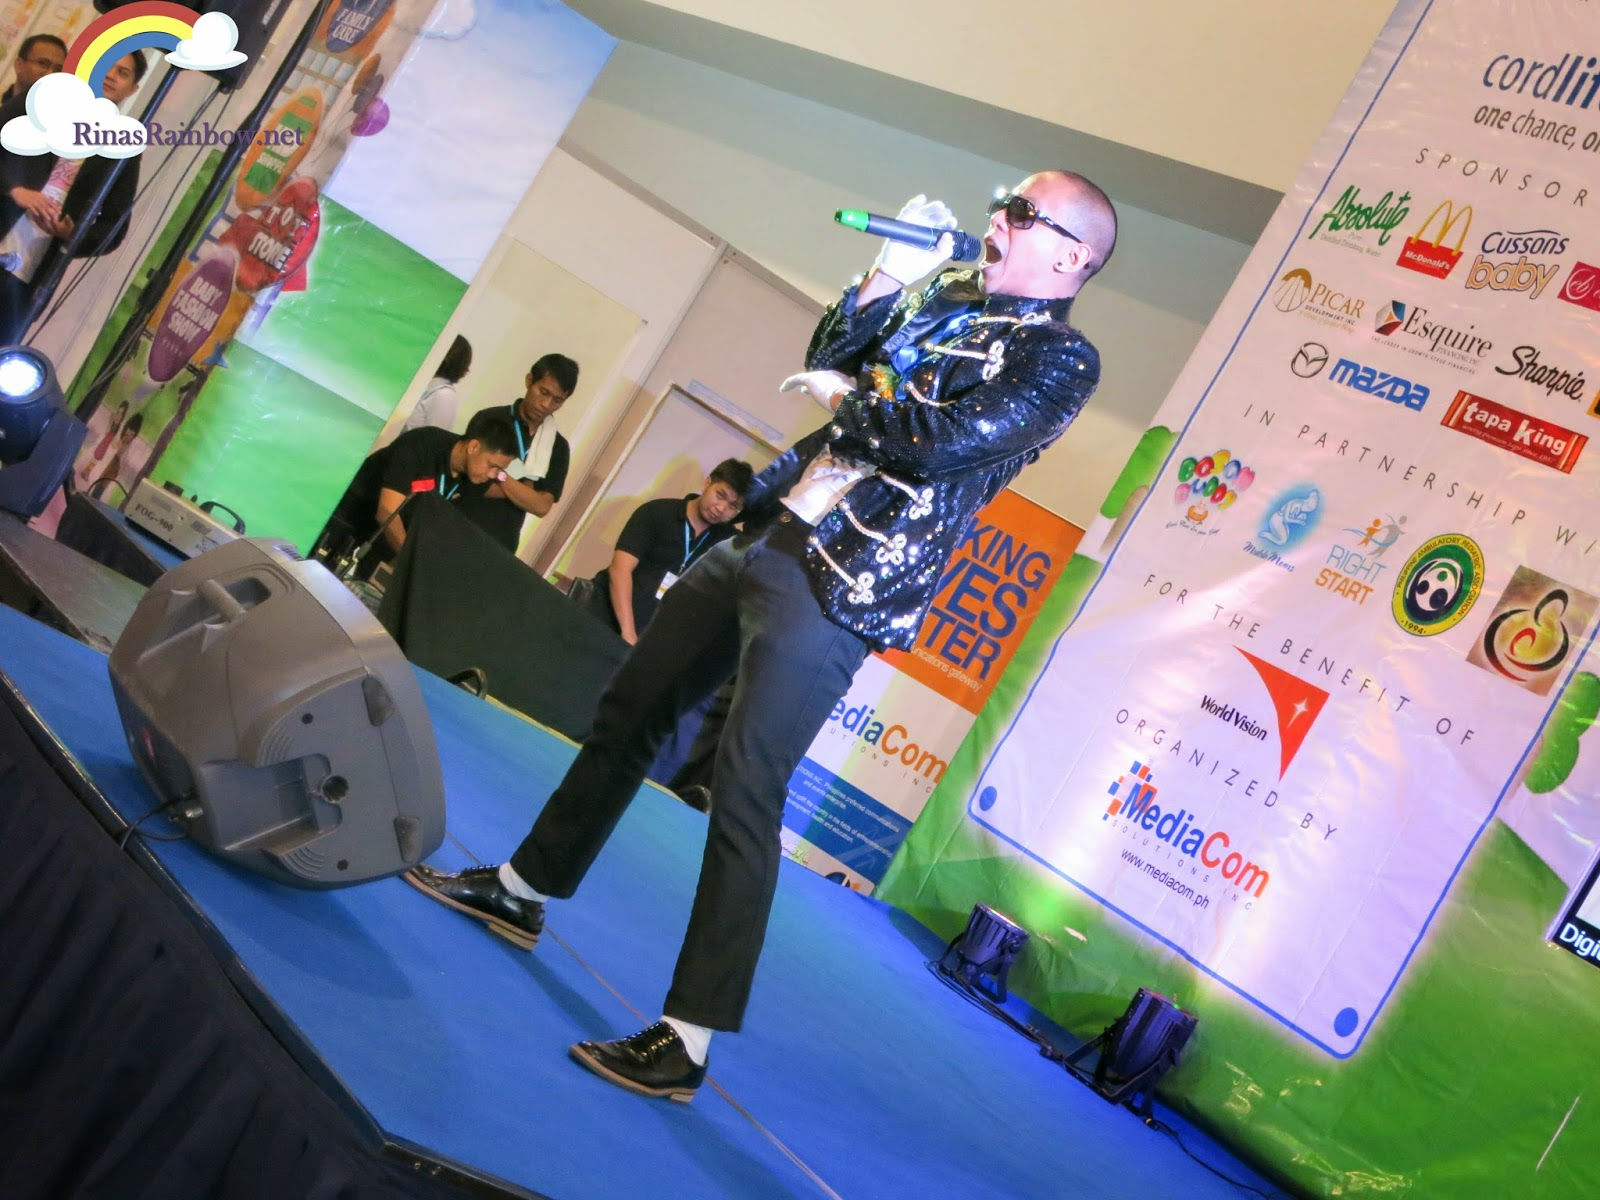 baby and family expo 2013 mikey bustos